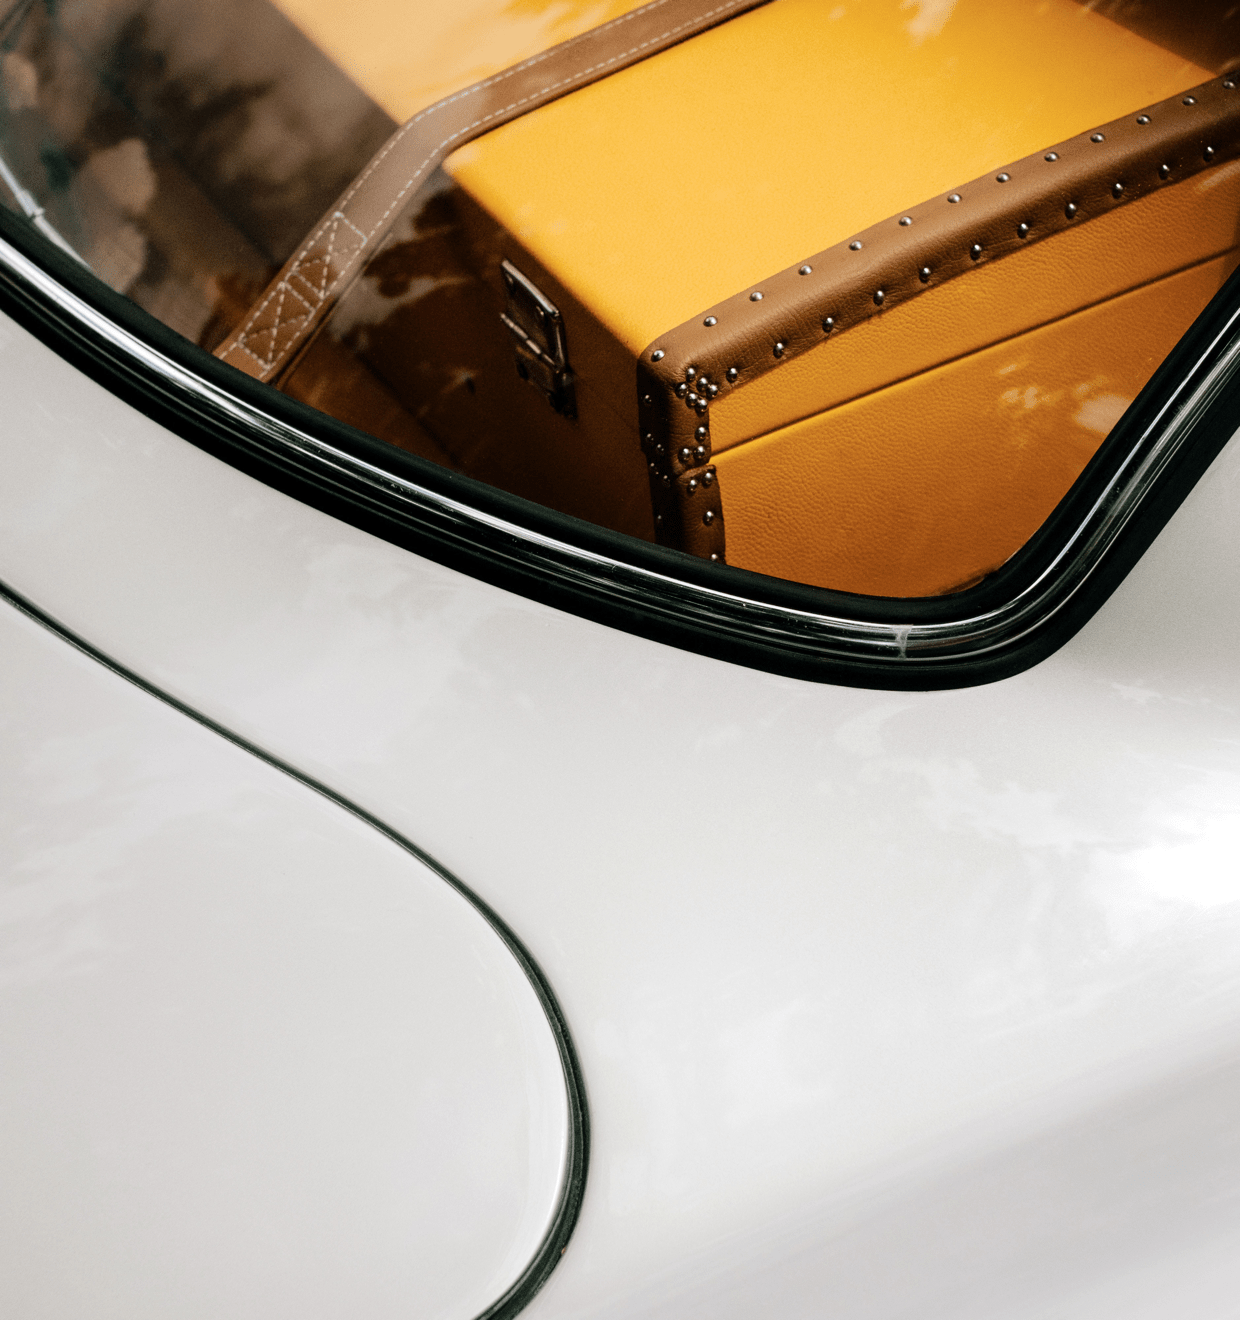 The back of a fancy white sports car showing a yellow retro suitcase